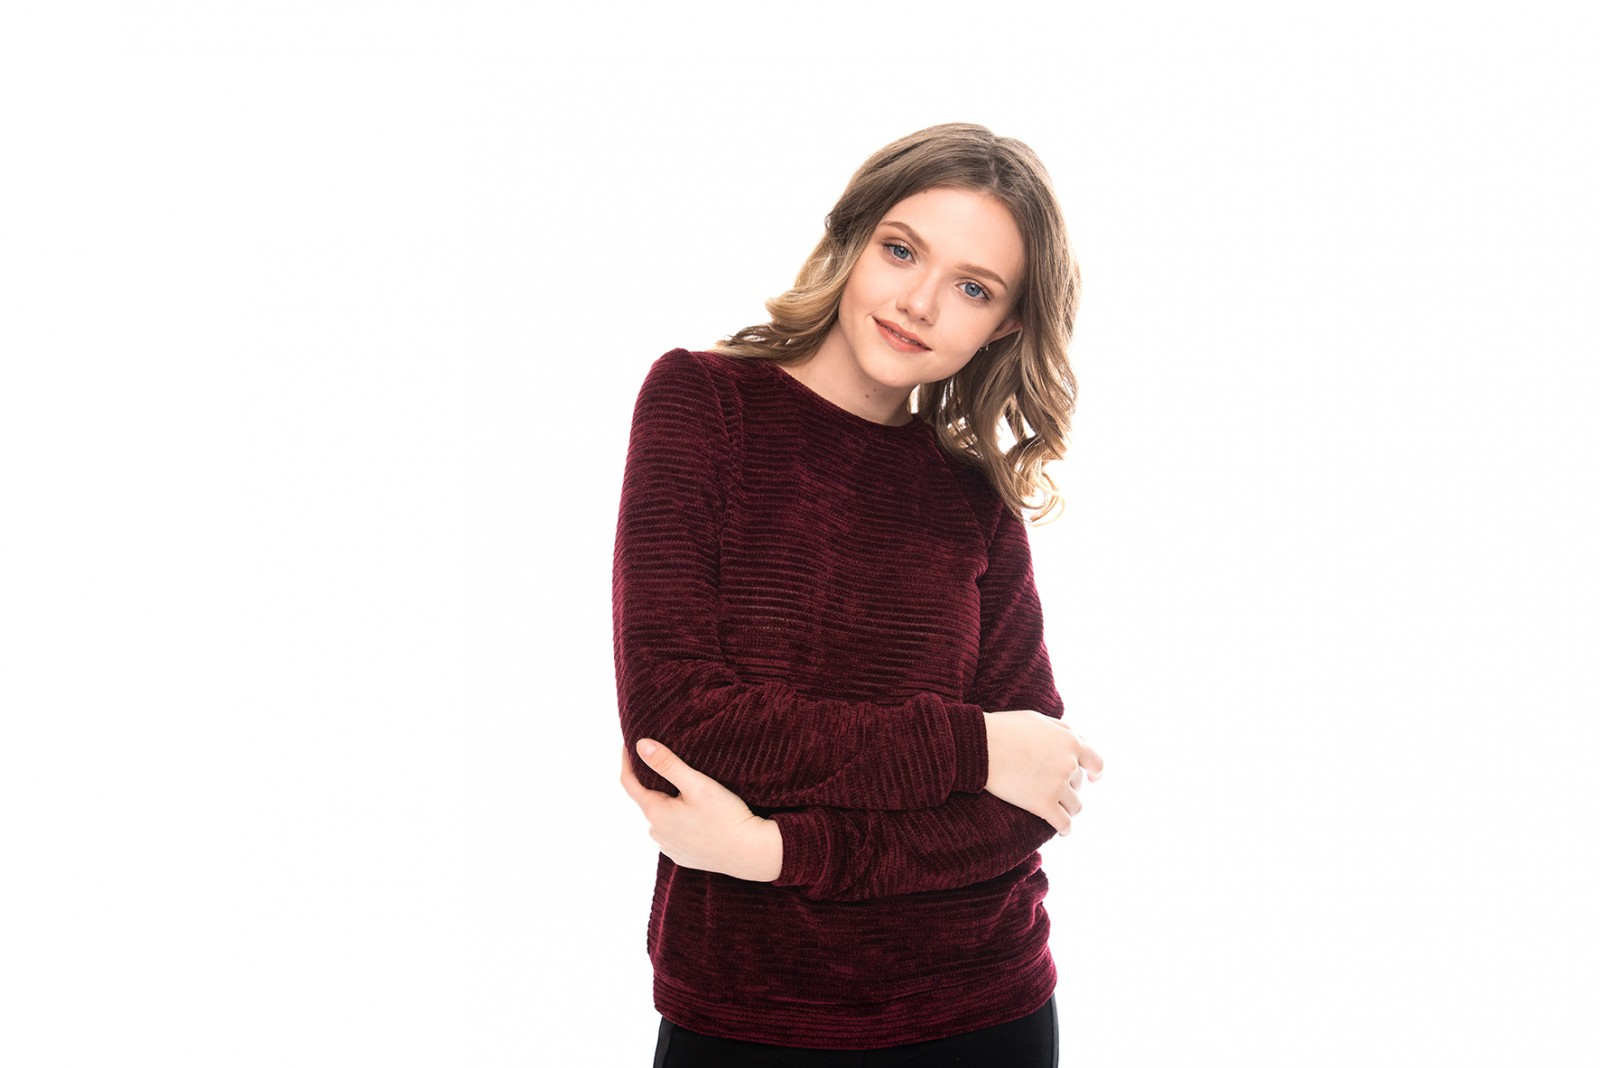 Wine-colored jumper